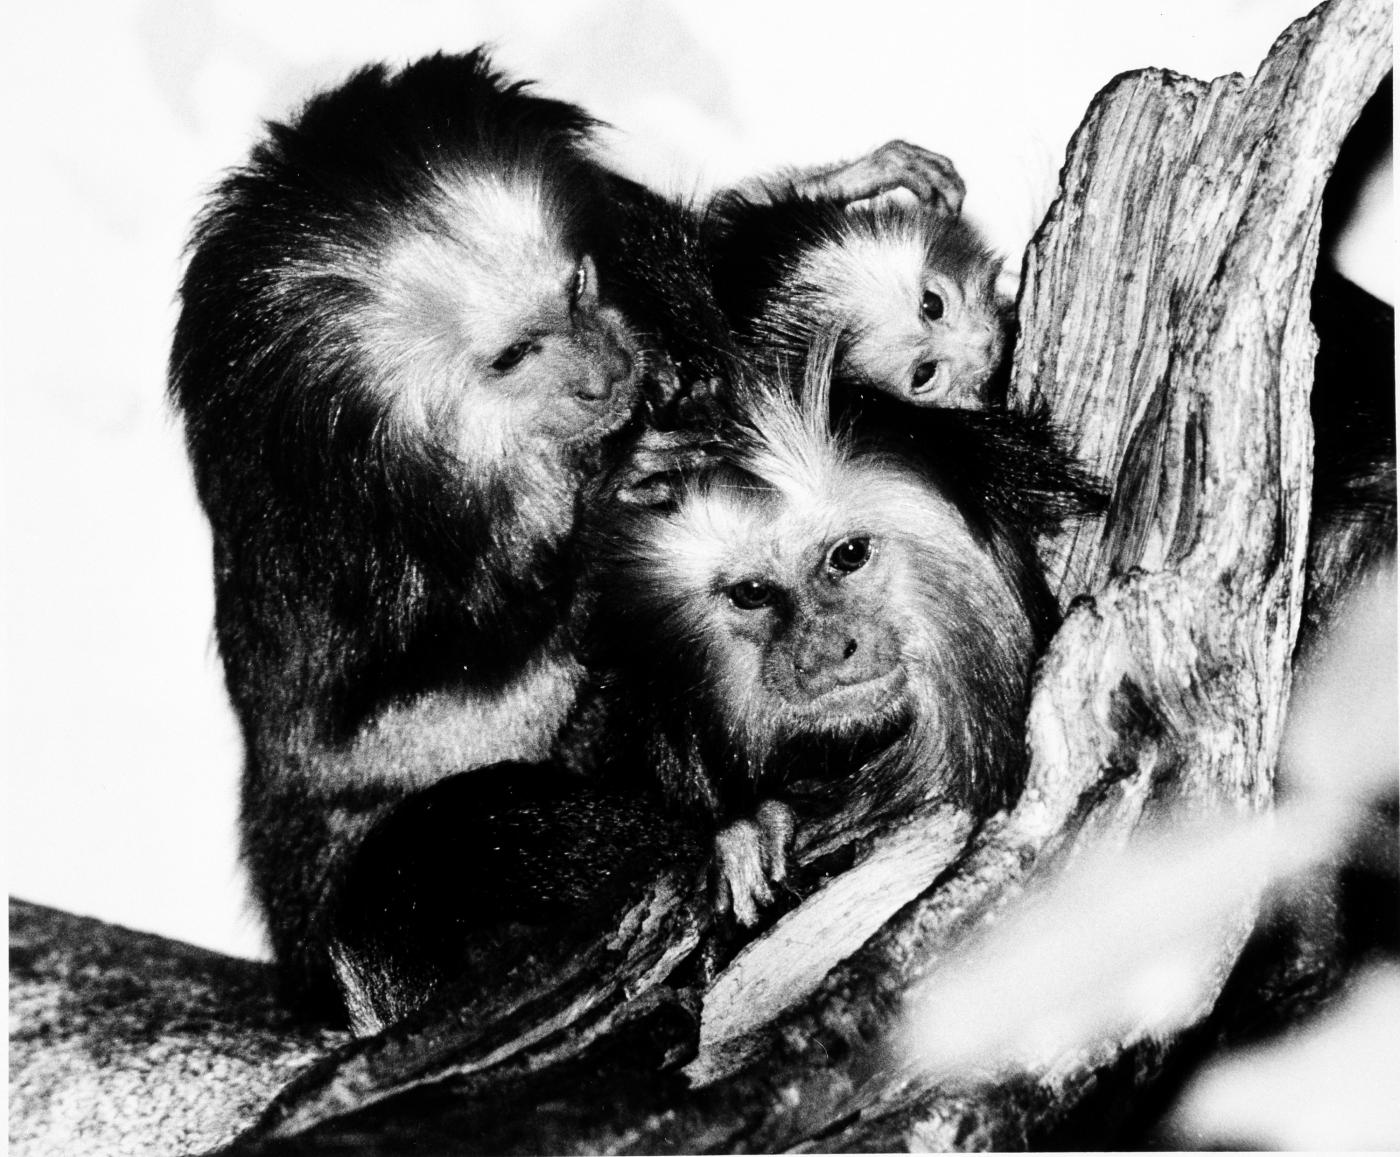 A family of endangered golden-headed lion tamarins at the Smithsonian's National Zoo in 1986.